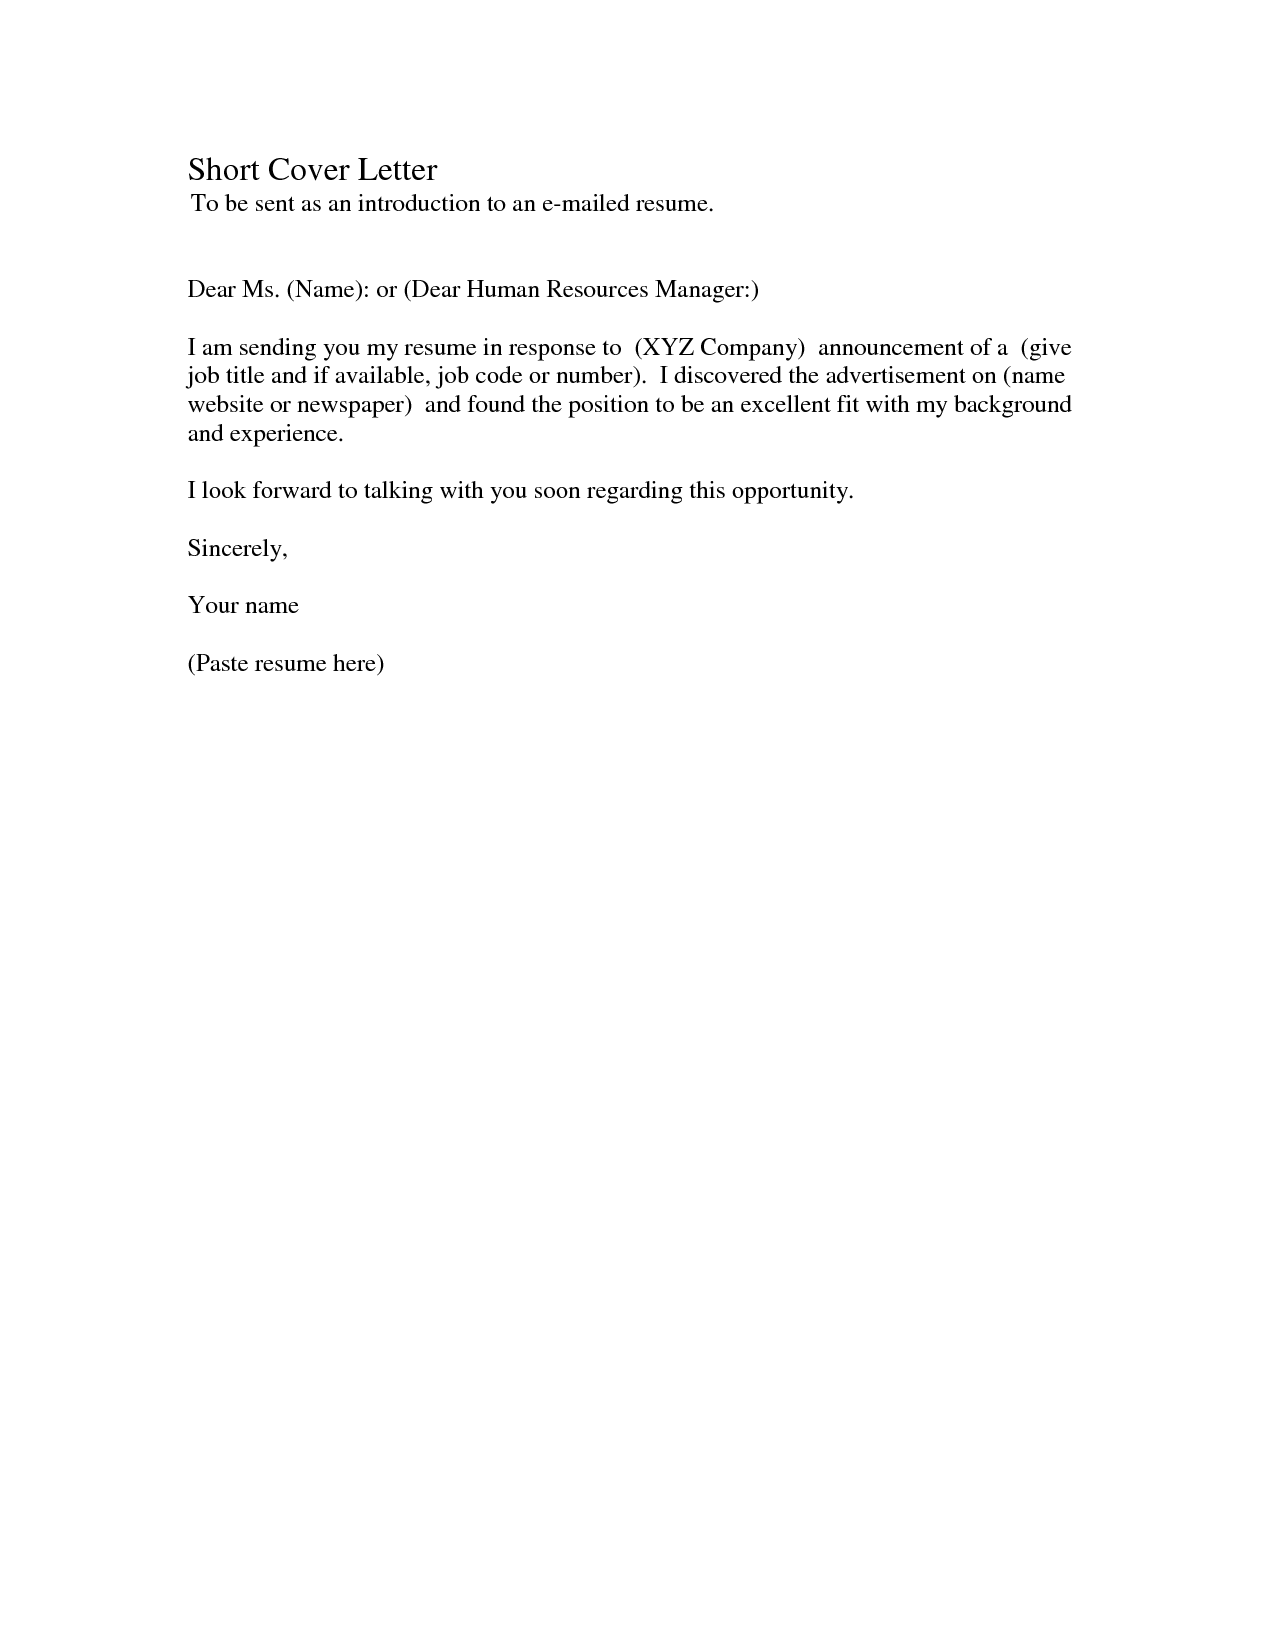 simple cover lettersimple cover letter application letter sample - What Is A Short Application Cover Letter